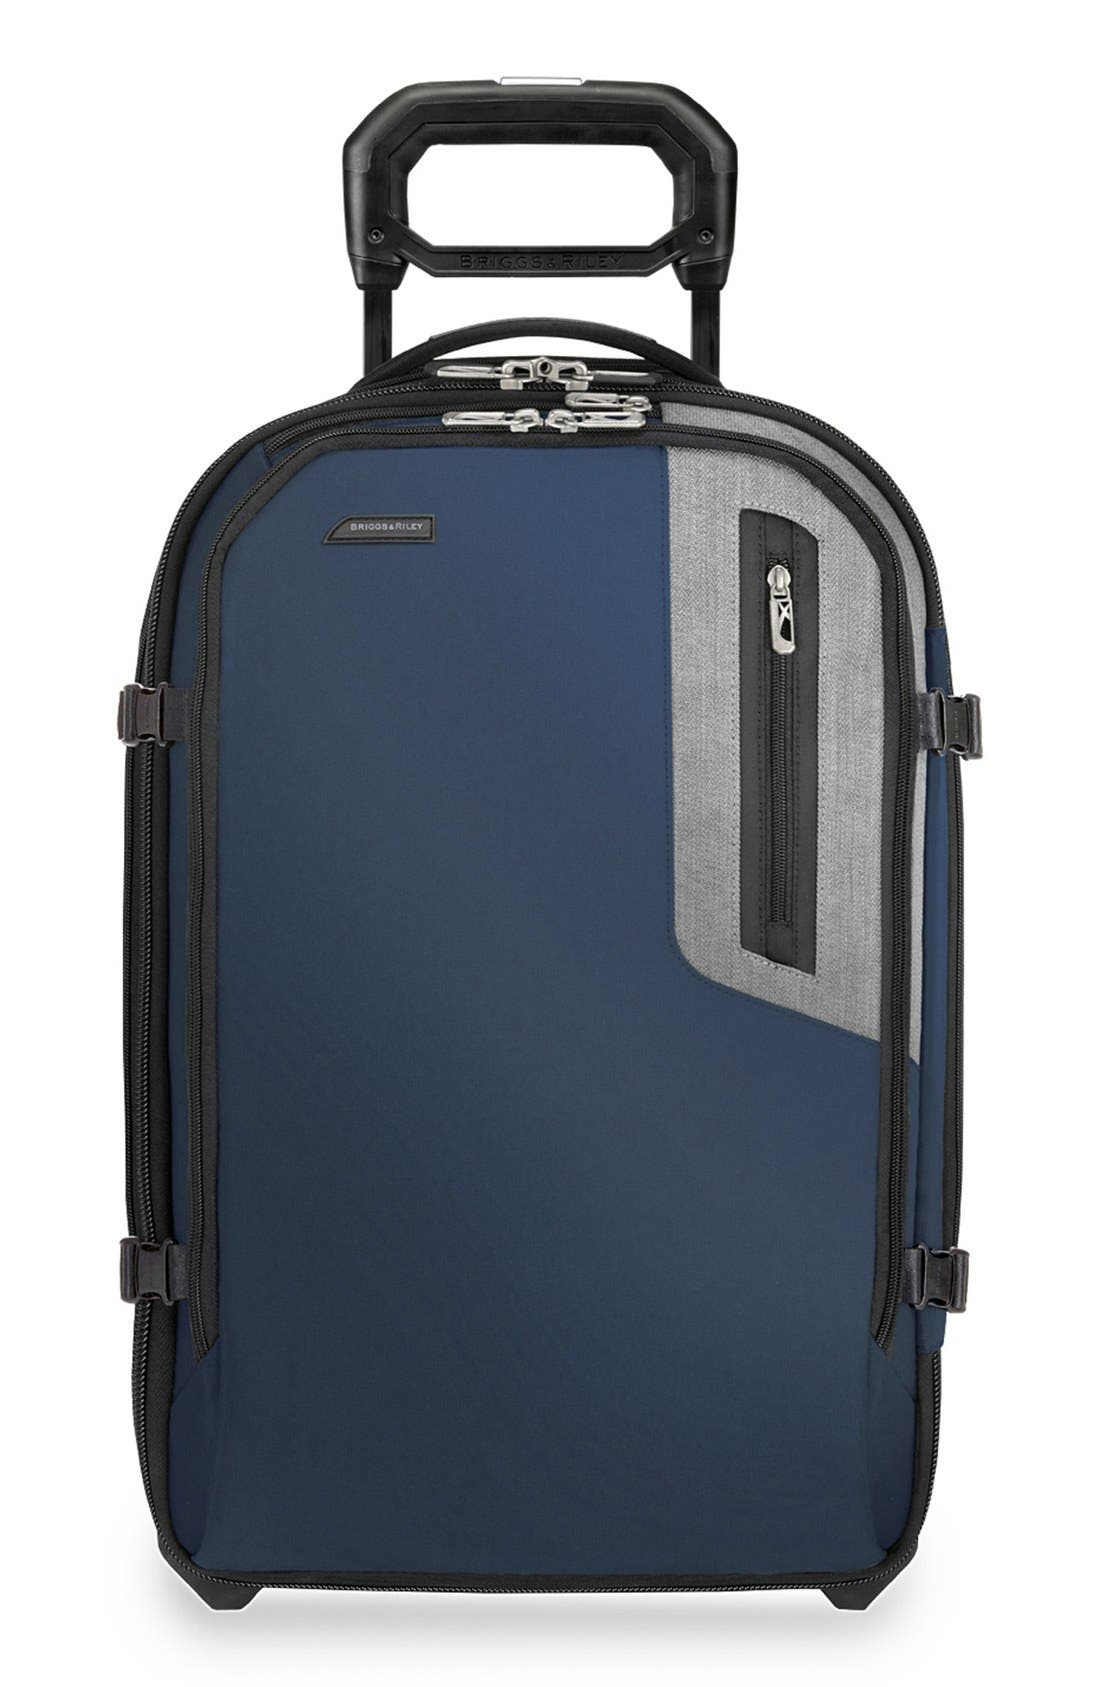 BRIGGS & RILEY 'BRX - Explore' Domestic Wheeled Carry-On, Main, color, BLUE